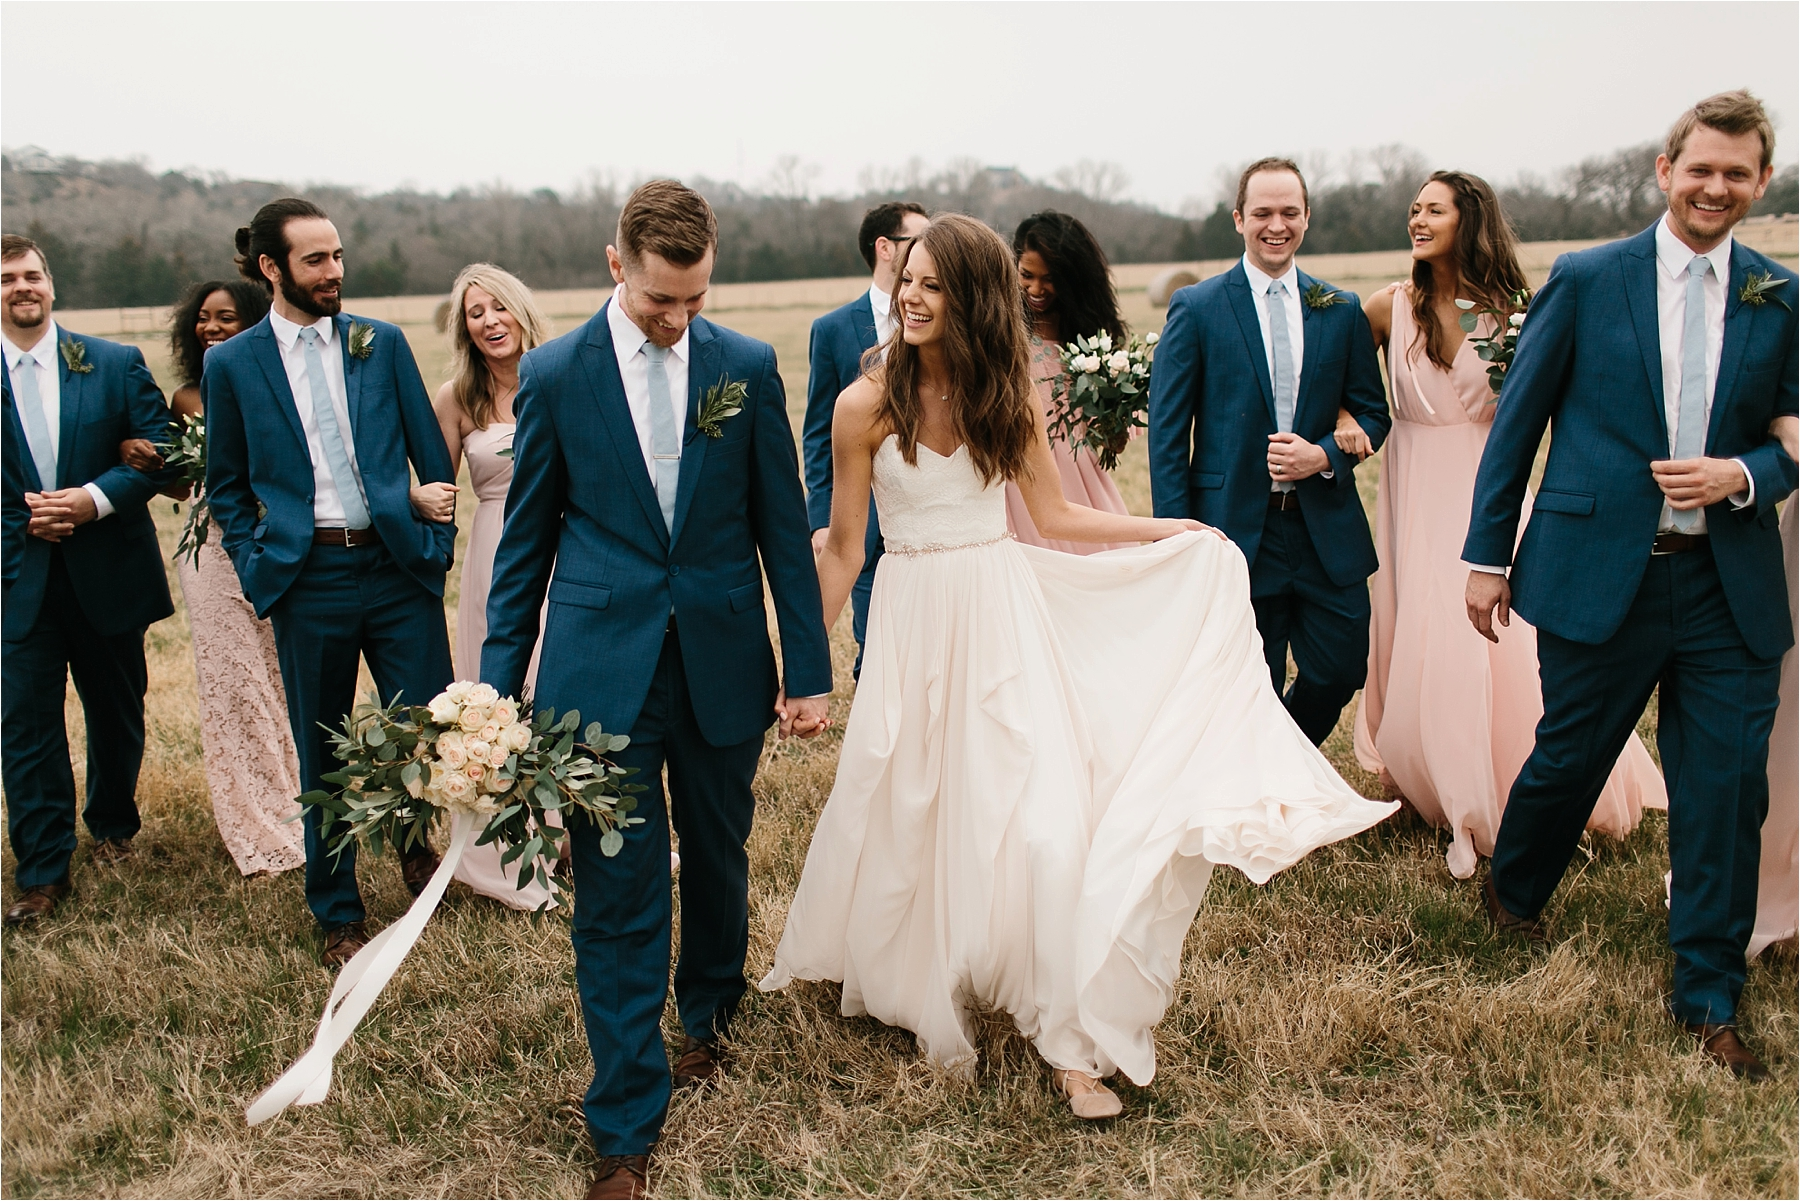 Lauren + Matt __ an intimate, emotional, blush pink, navy blue, and greenery toned wedding accents at the Brooks at Weatherford by North Texas Wedding Photographer Rachel Meagan Photography090